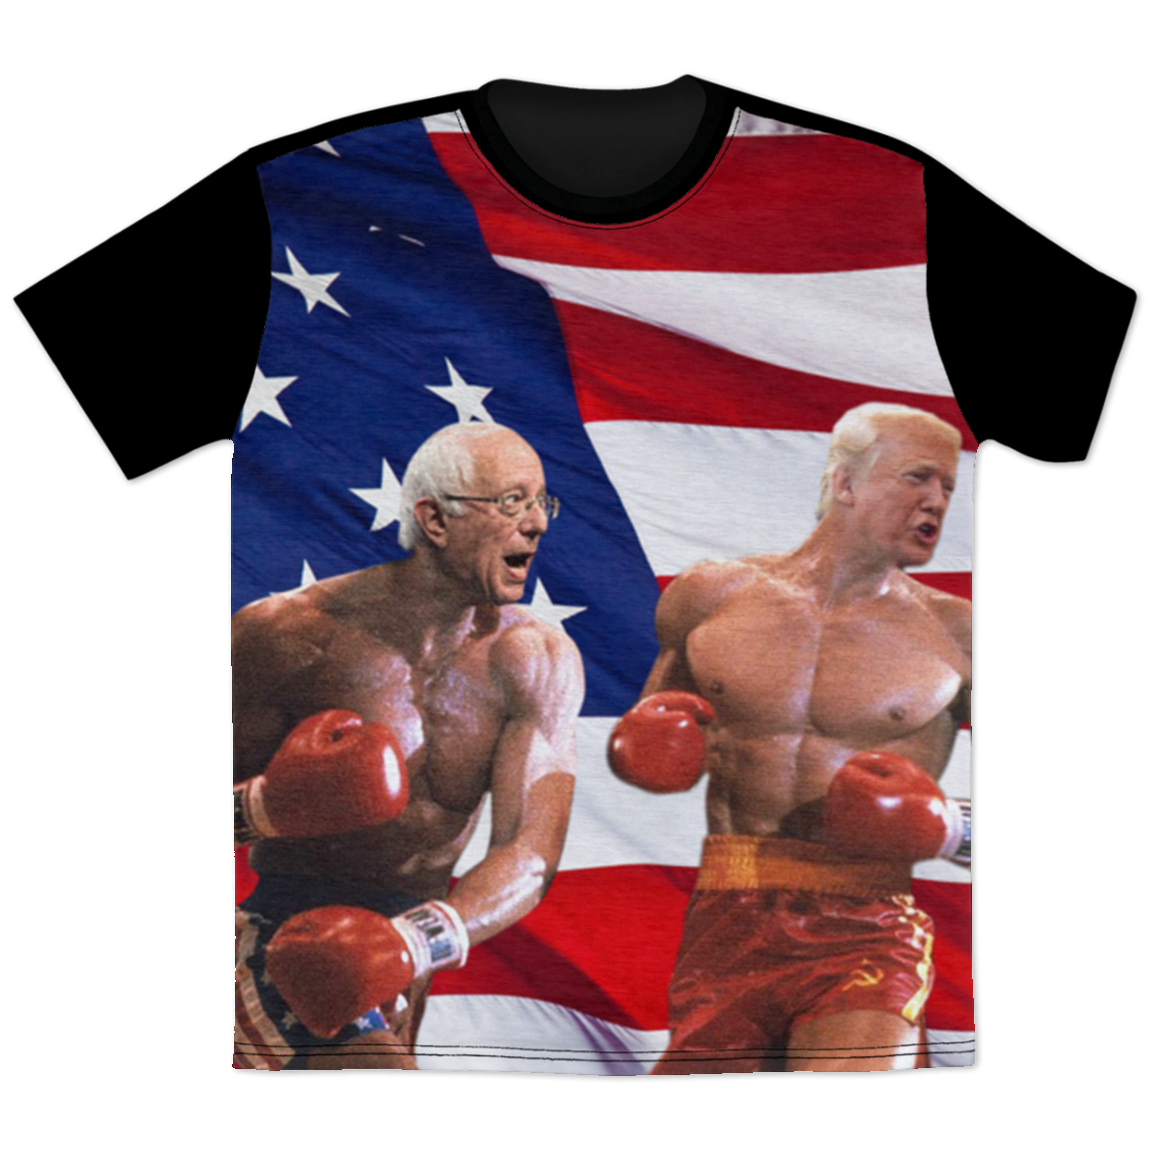 Politics - Bernie Sanders punching Trump All Over Print T-Shirt